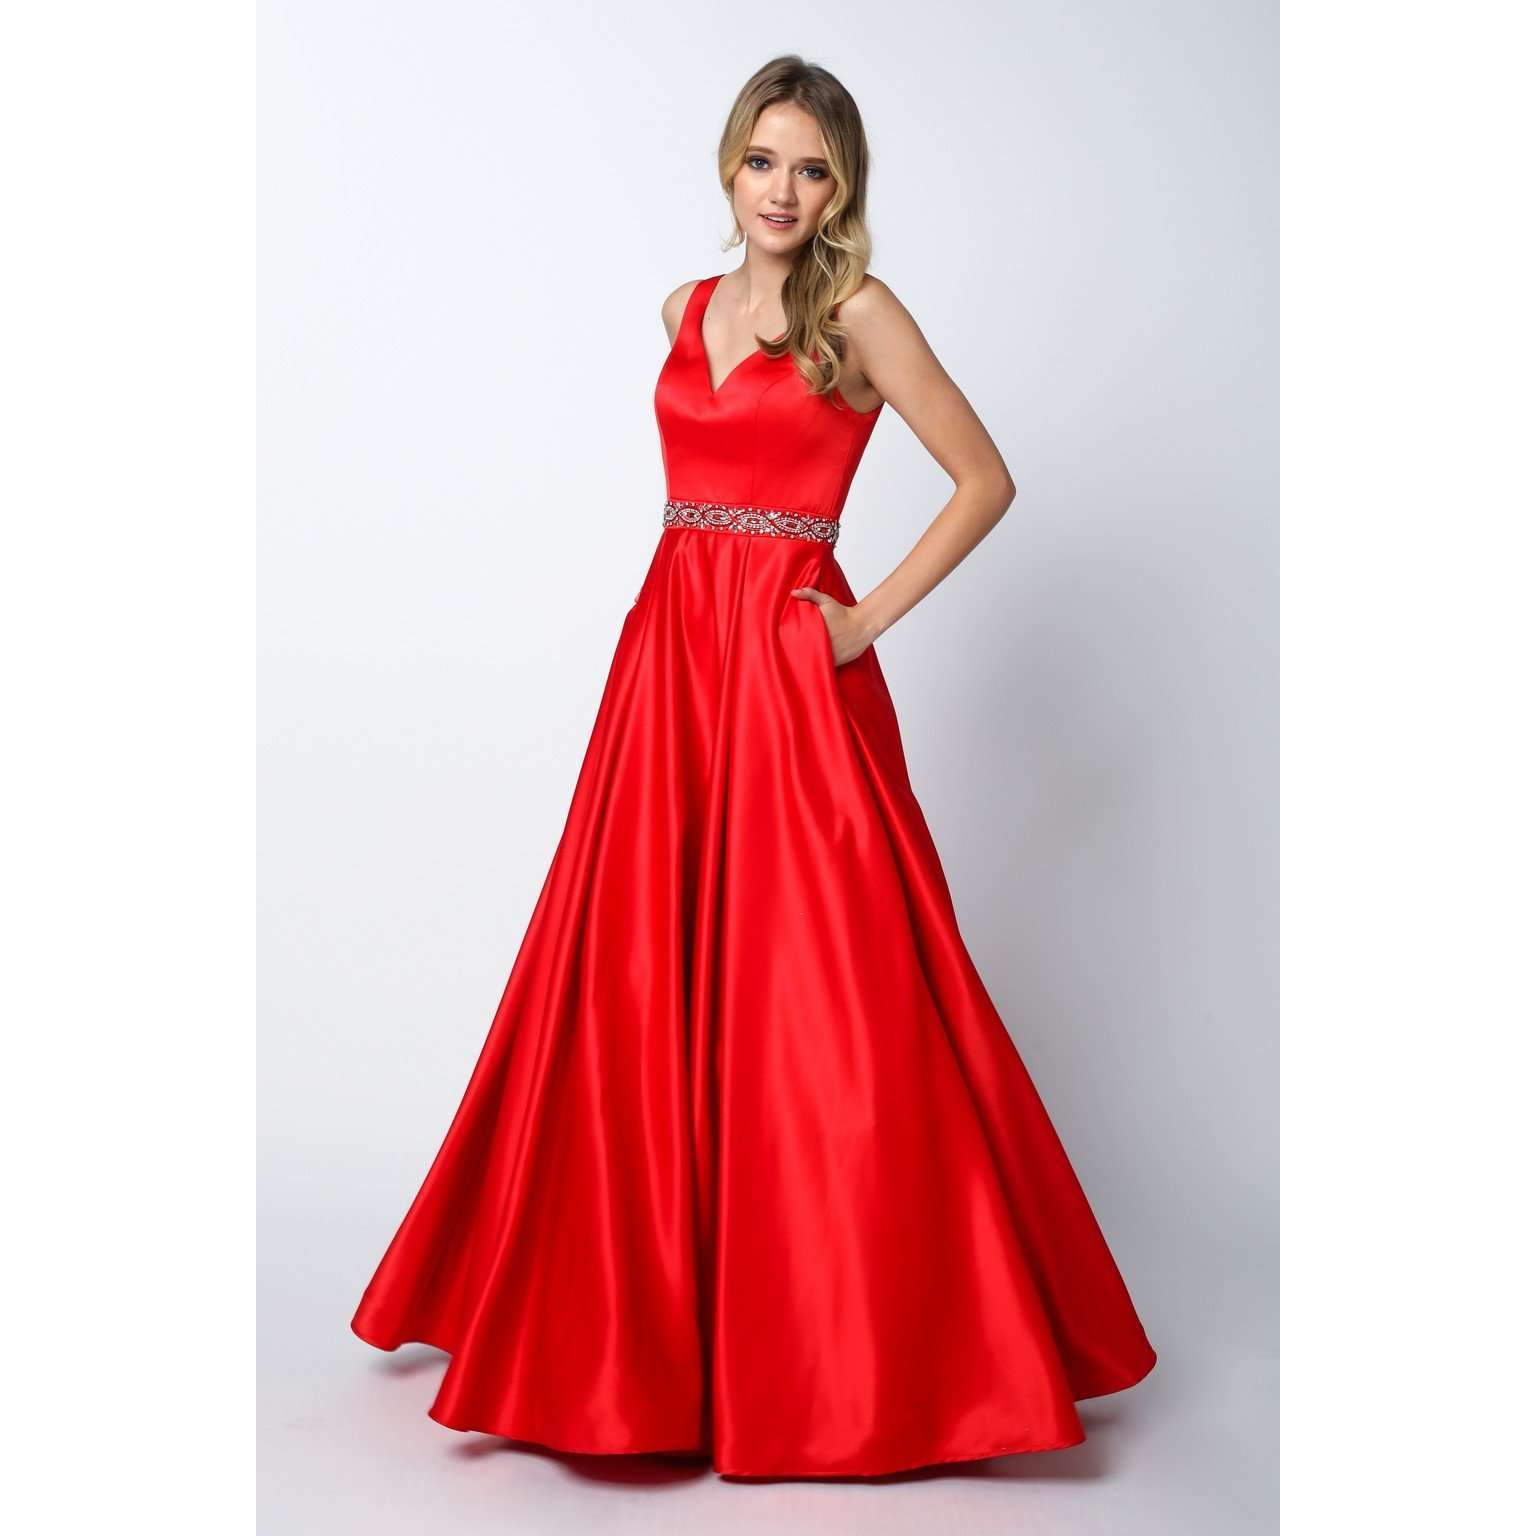 A-line Bodice with Beaded Waist Prom BallGown 666 - Julietdresses